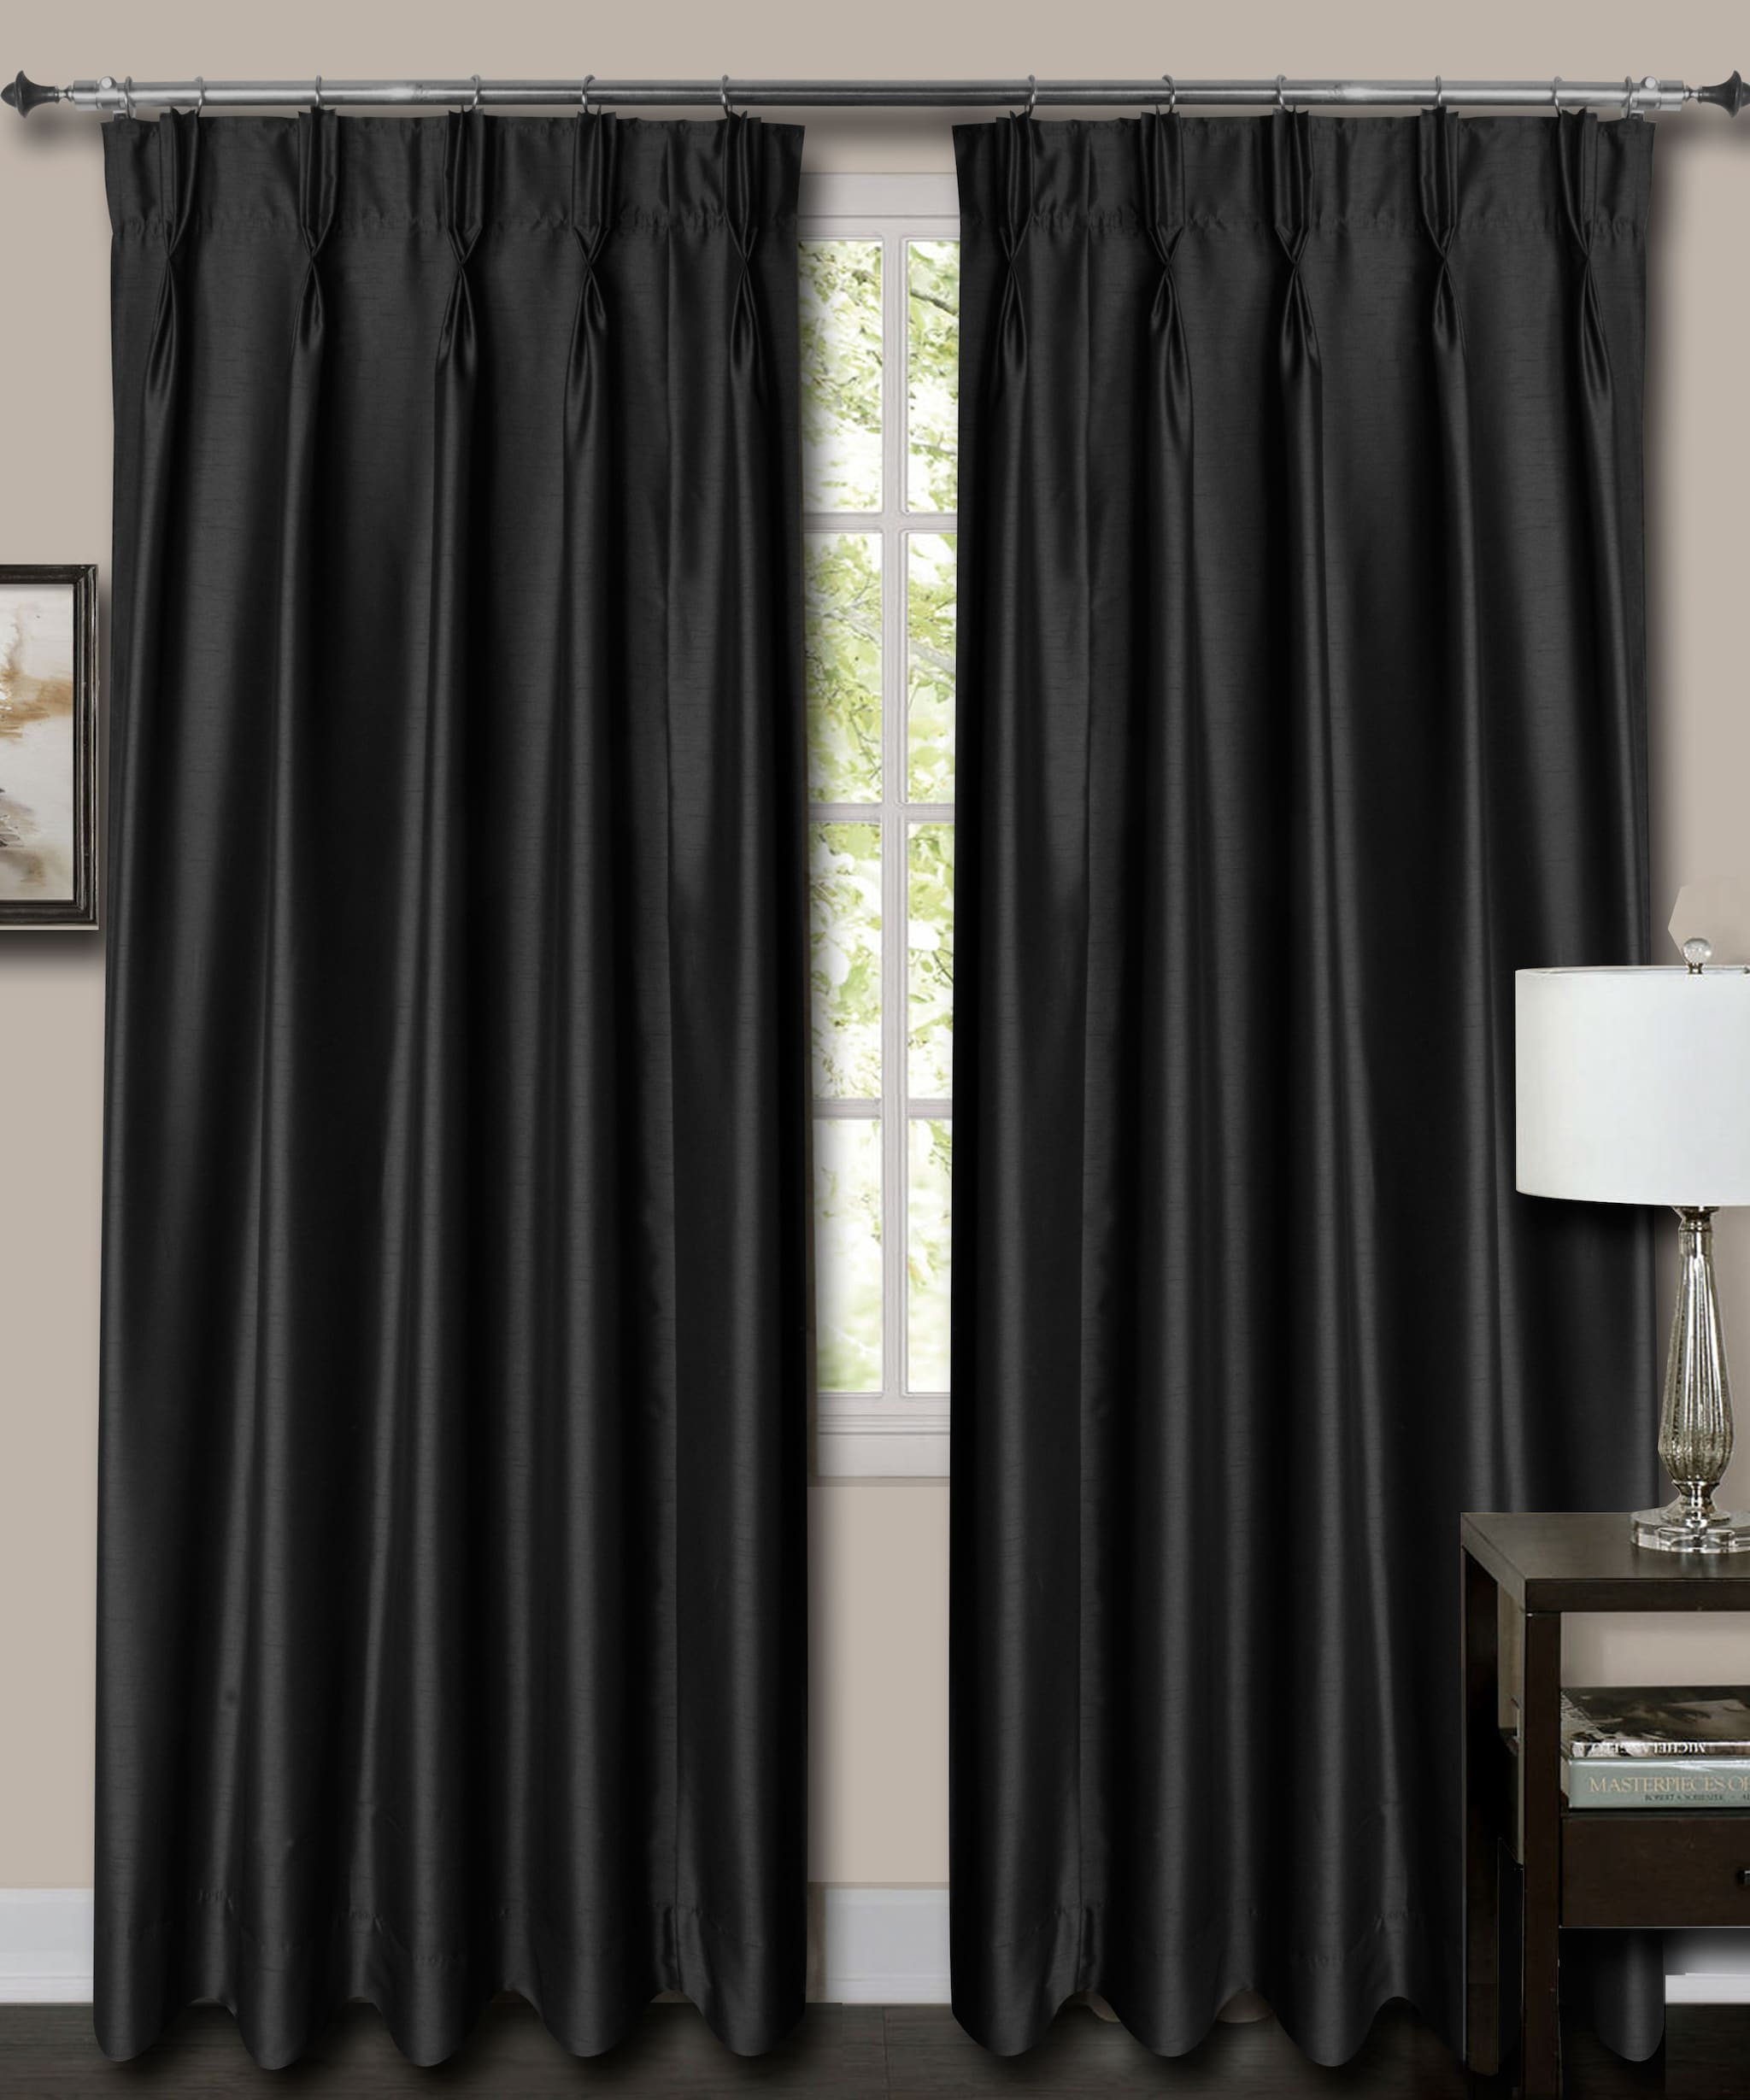 "French Pleat Top Black Faux Silk Dupioni Curtains. (52"" Wide,4 Feet Long,Thick Lining)"